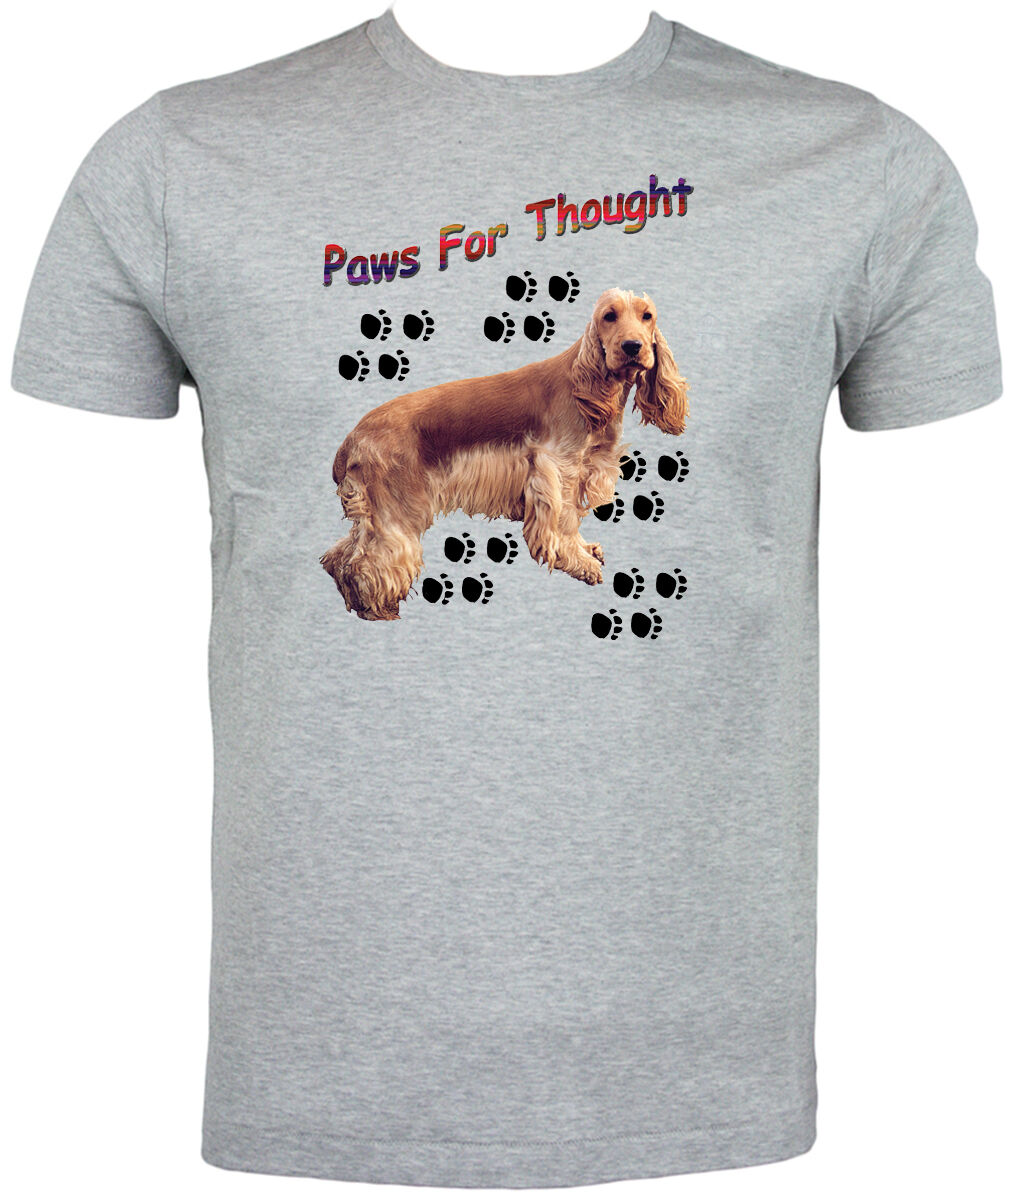 If Its Not A Cocker Spaniel Its Just A Funny Kids Childrens T-Shirt tee TShirt